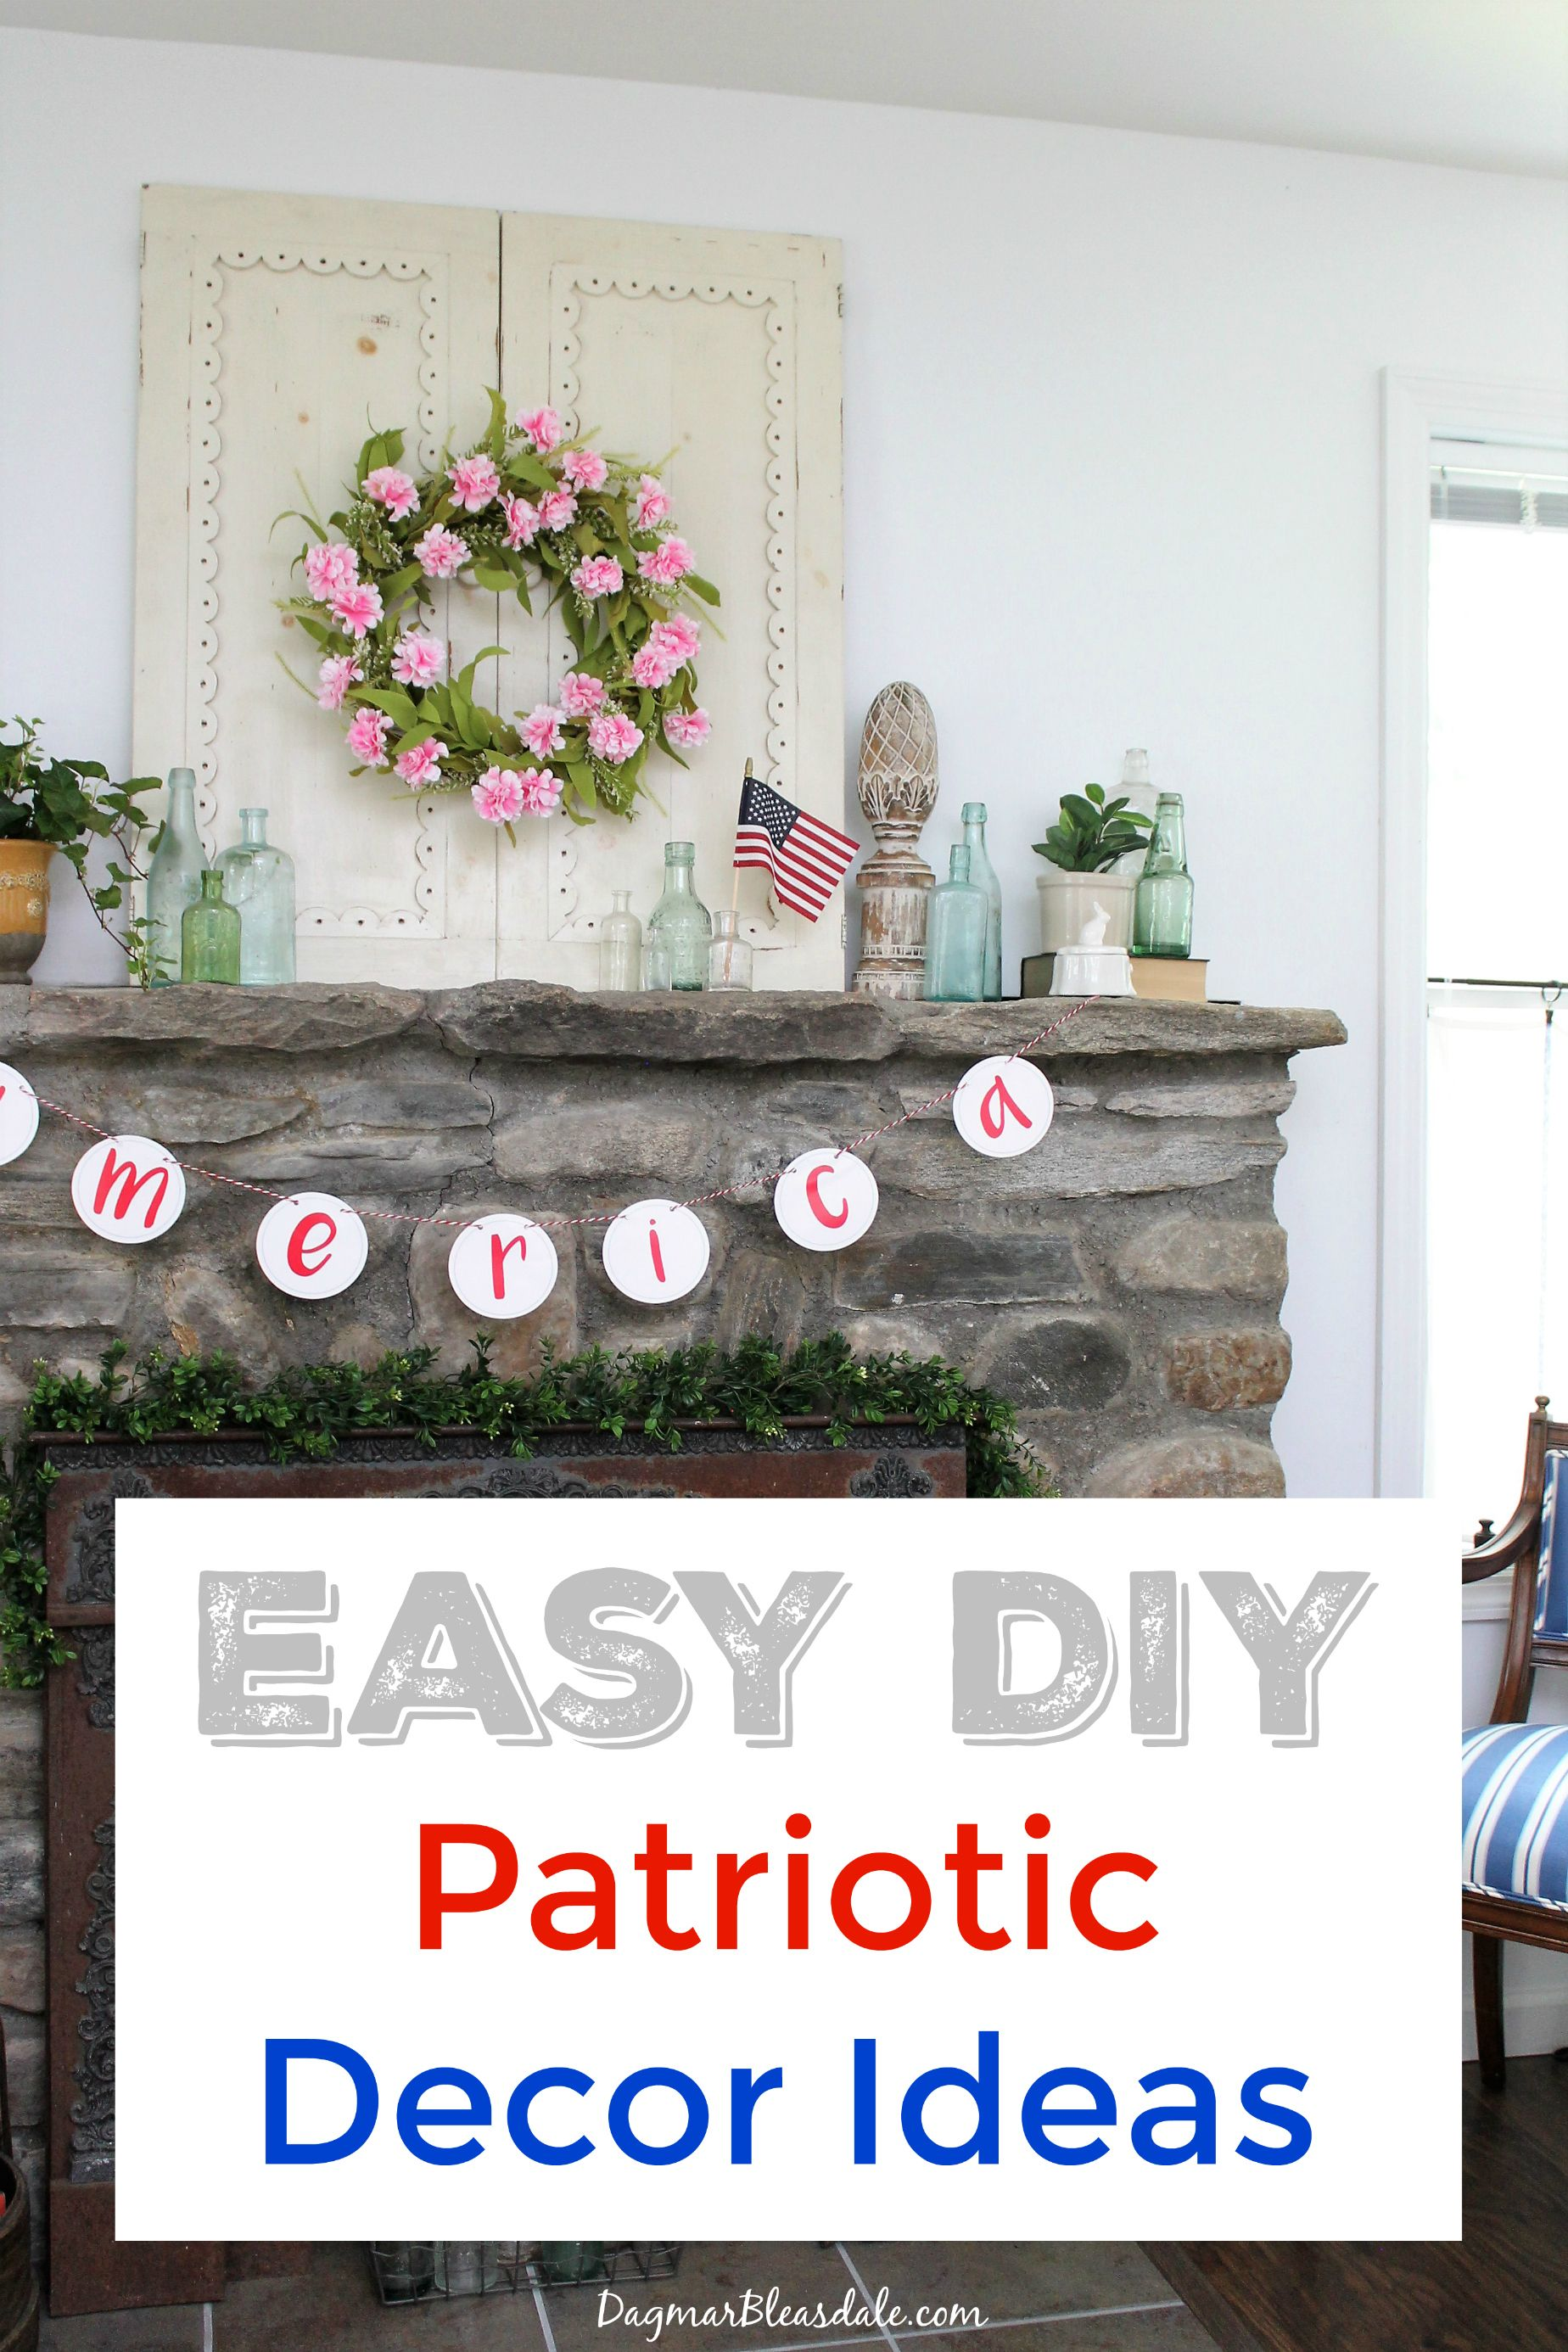 4th of July Decorations - Banners, Flags, and DIY Ideas | Diy ...